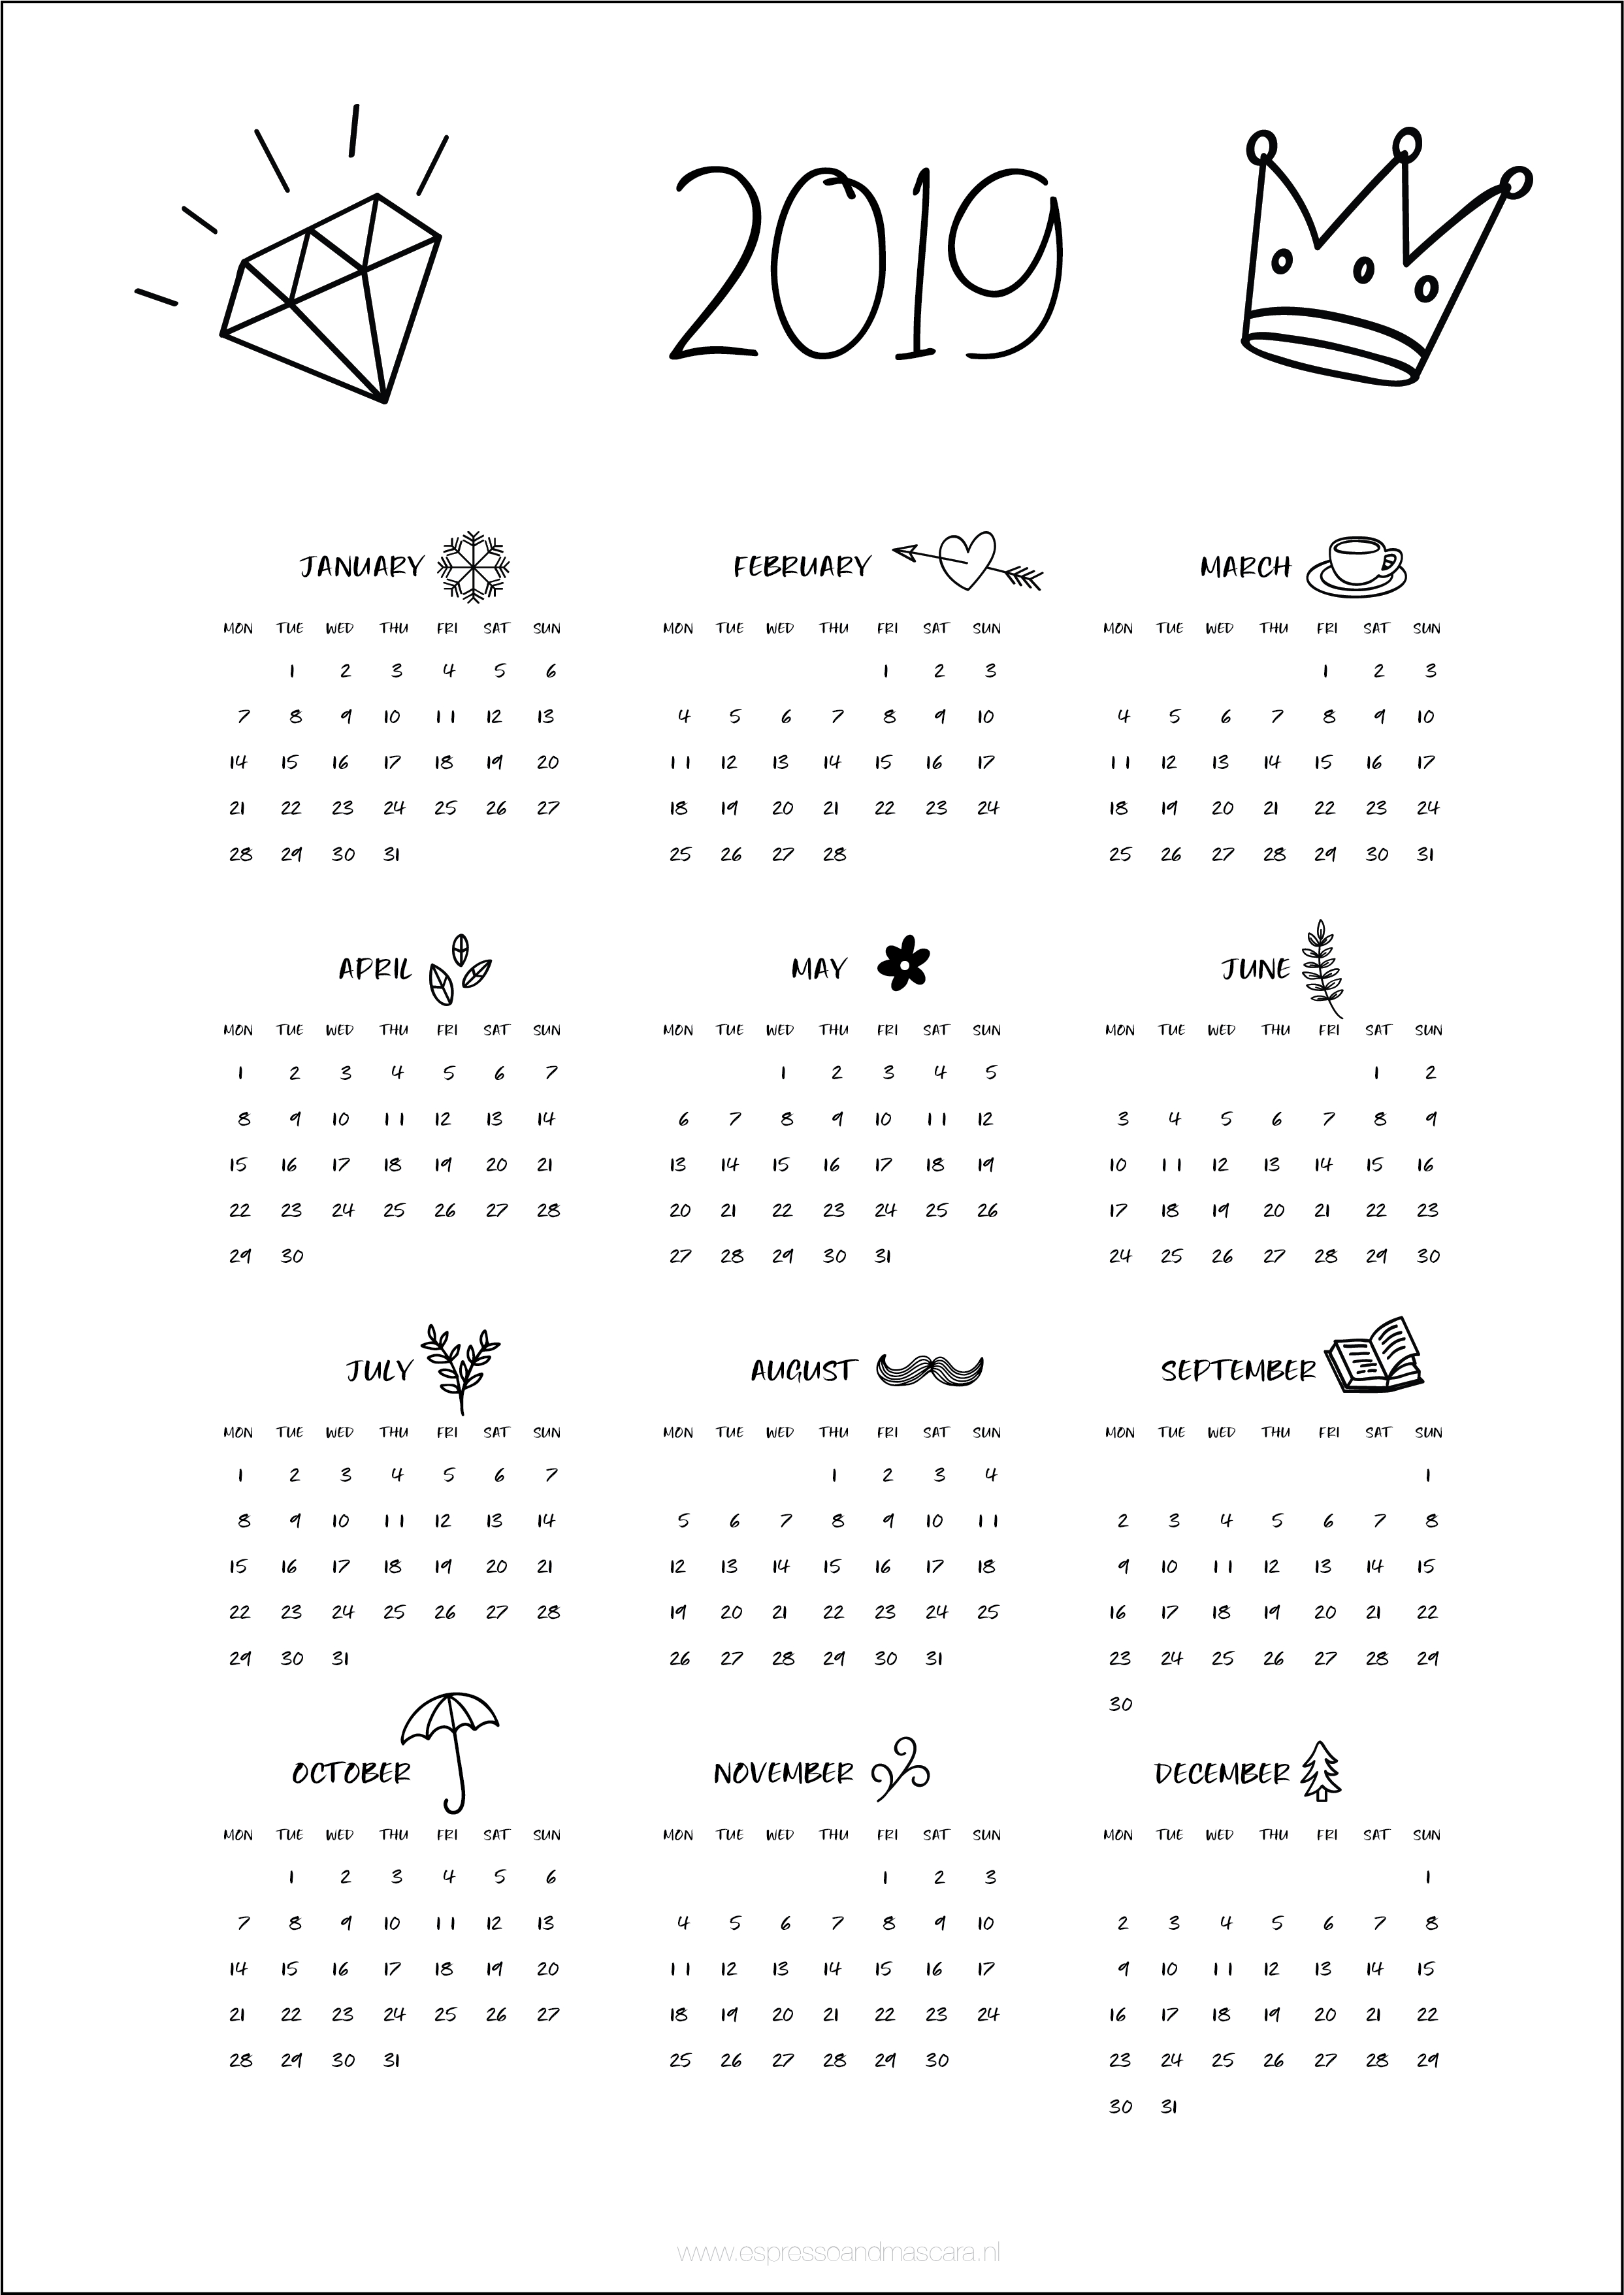 Calendars 2019 – Free Download | Insta | Pinterest | Calendar, 2019 Calendar 2019 Free